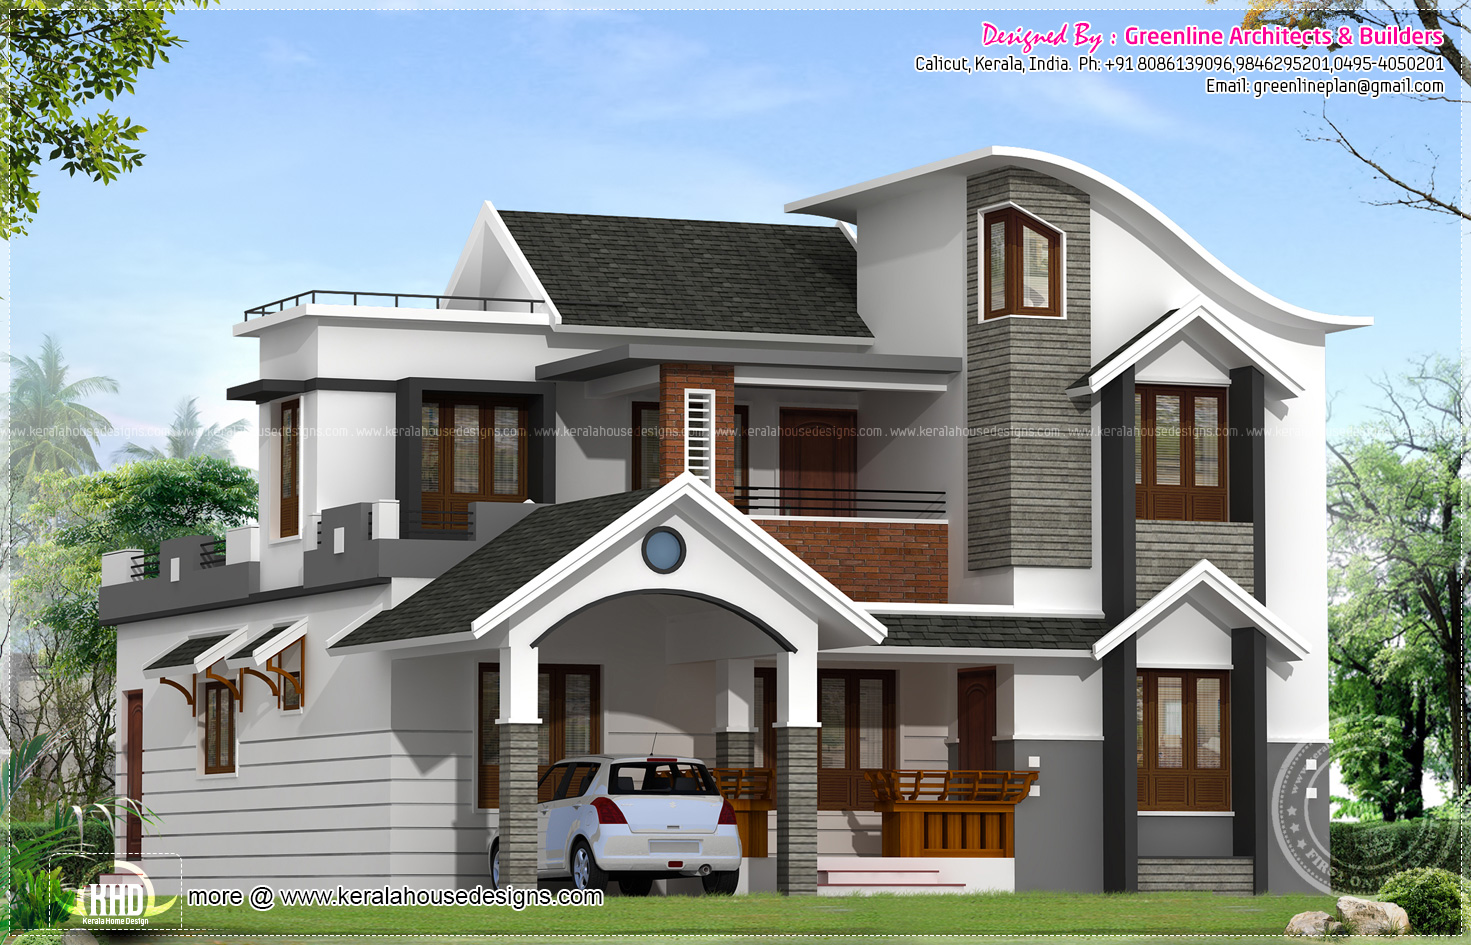 Modern house architecture in kerala kerala home design for Kerala home designs contemporary